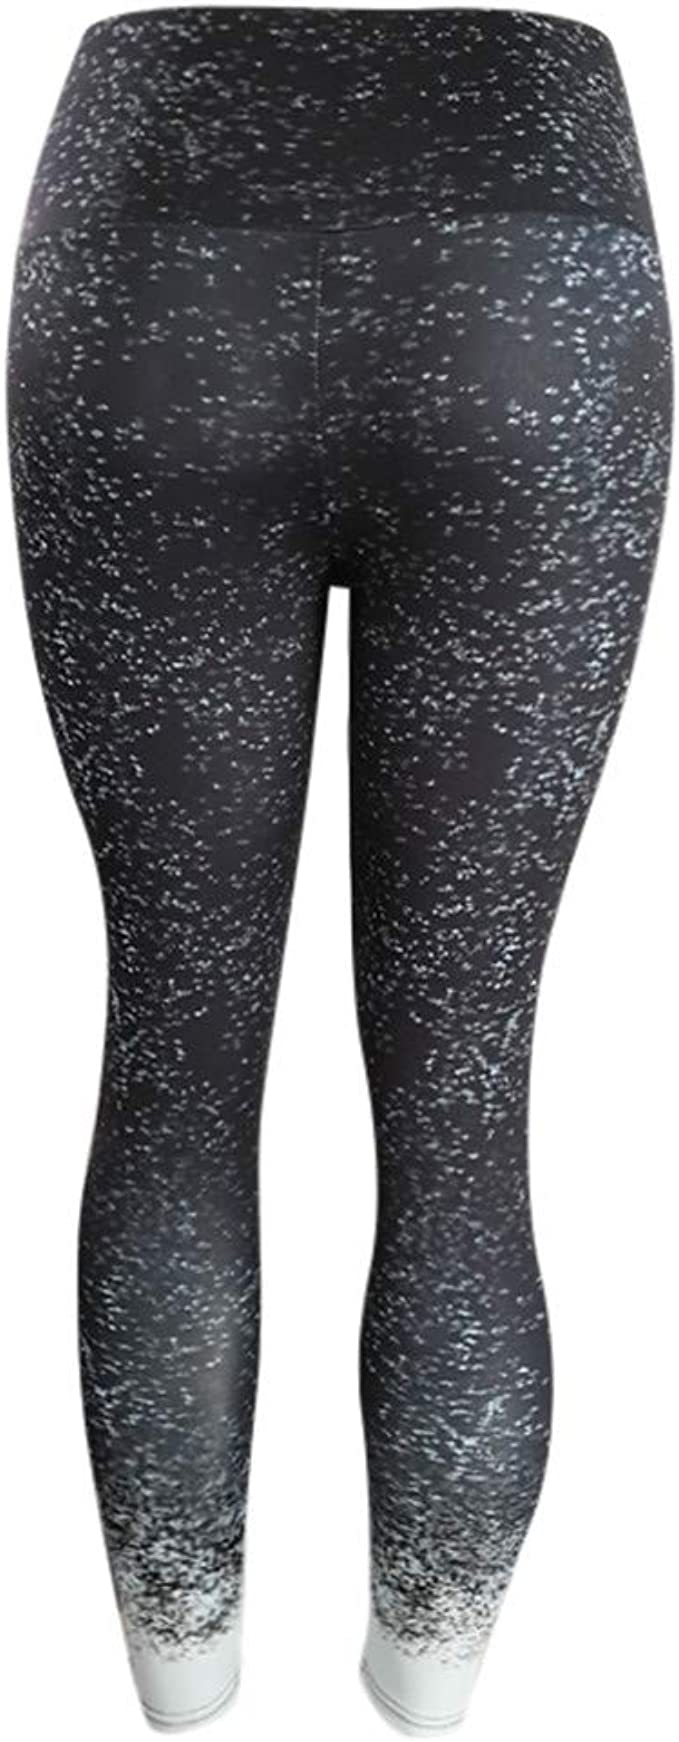 Amazon Com Justhigh Yoga Pants For Women Workout Legging Stars Print High Waist Stretch Tight Yoga Pants Clothing Grab yours today, tons of accounts are available for you to claim! high waist stretch tight yoga pants